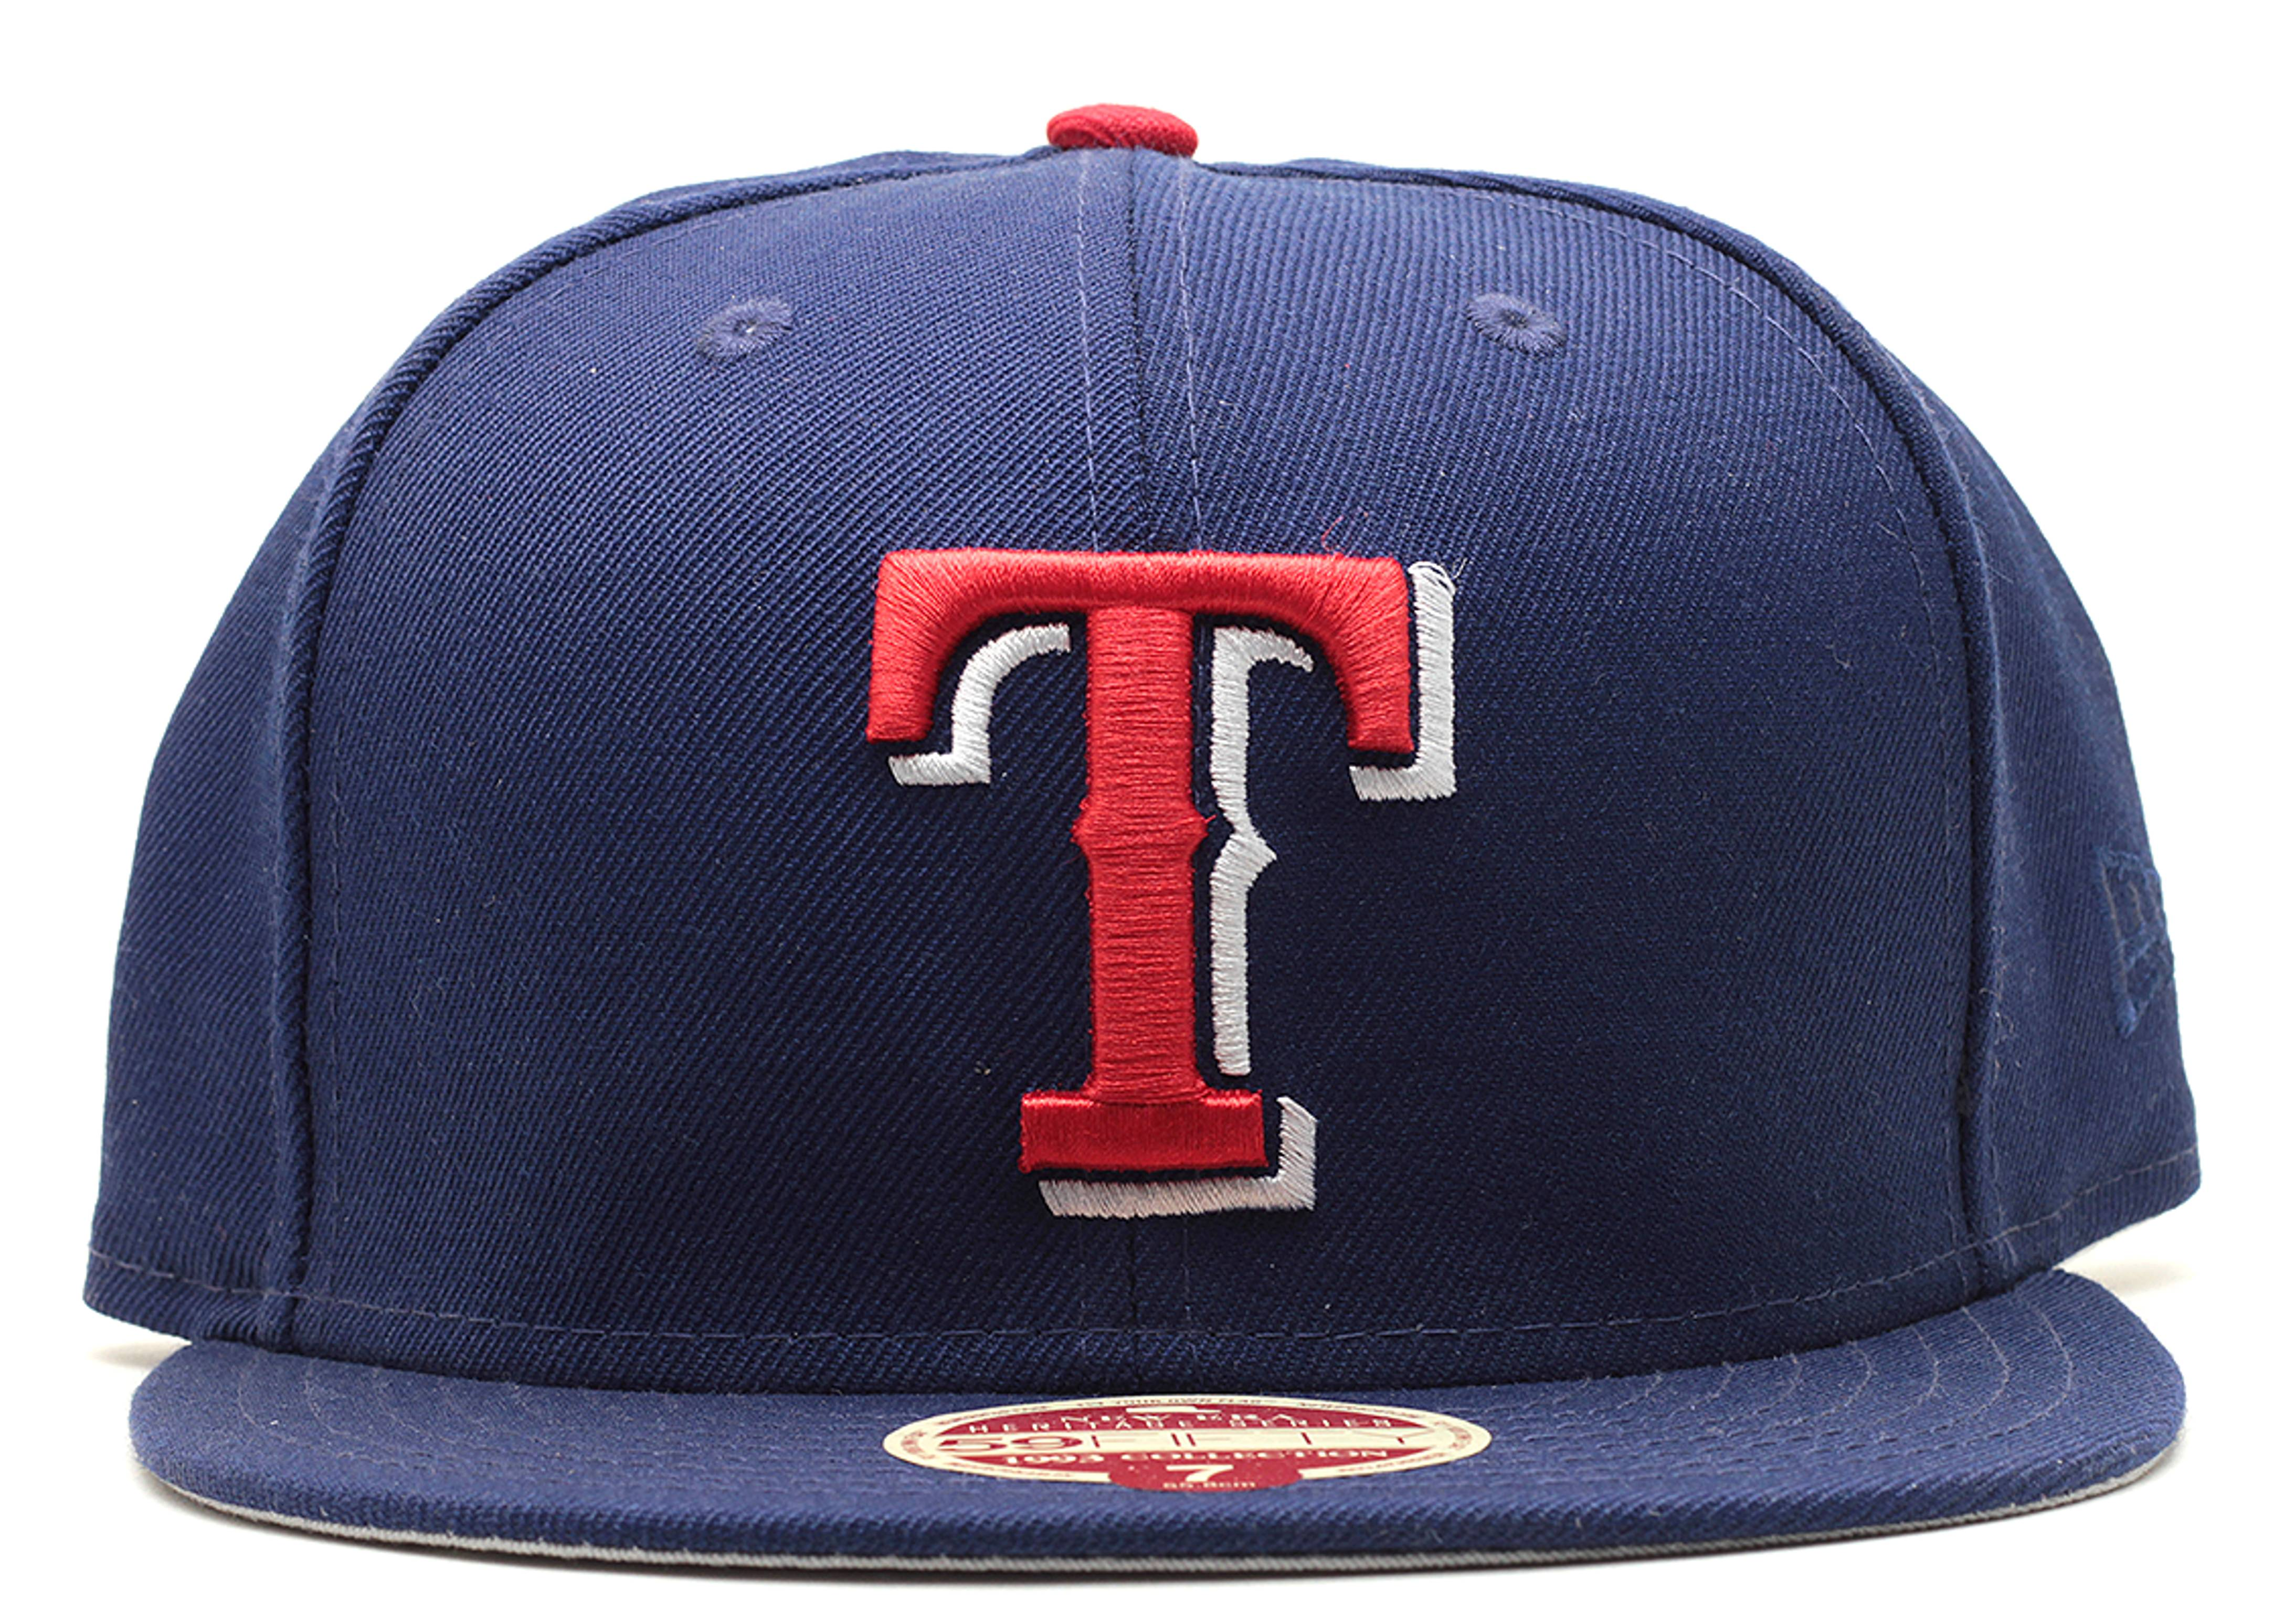 Texas Rangers Fitted